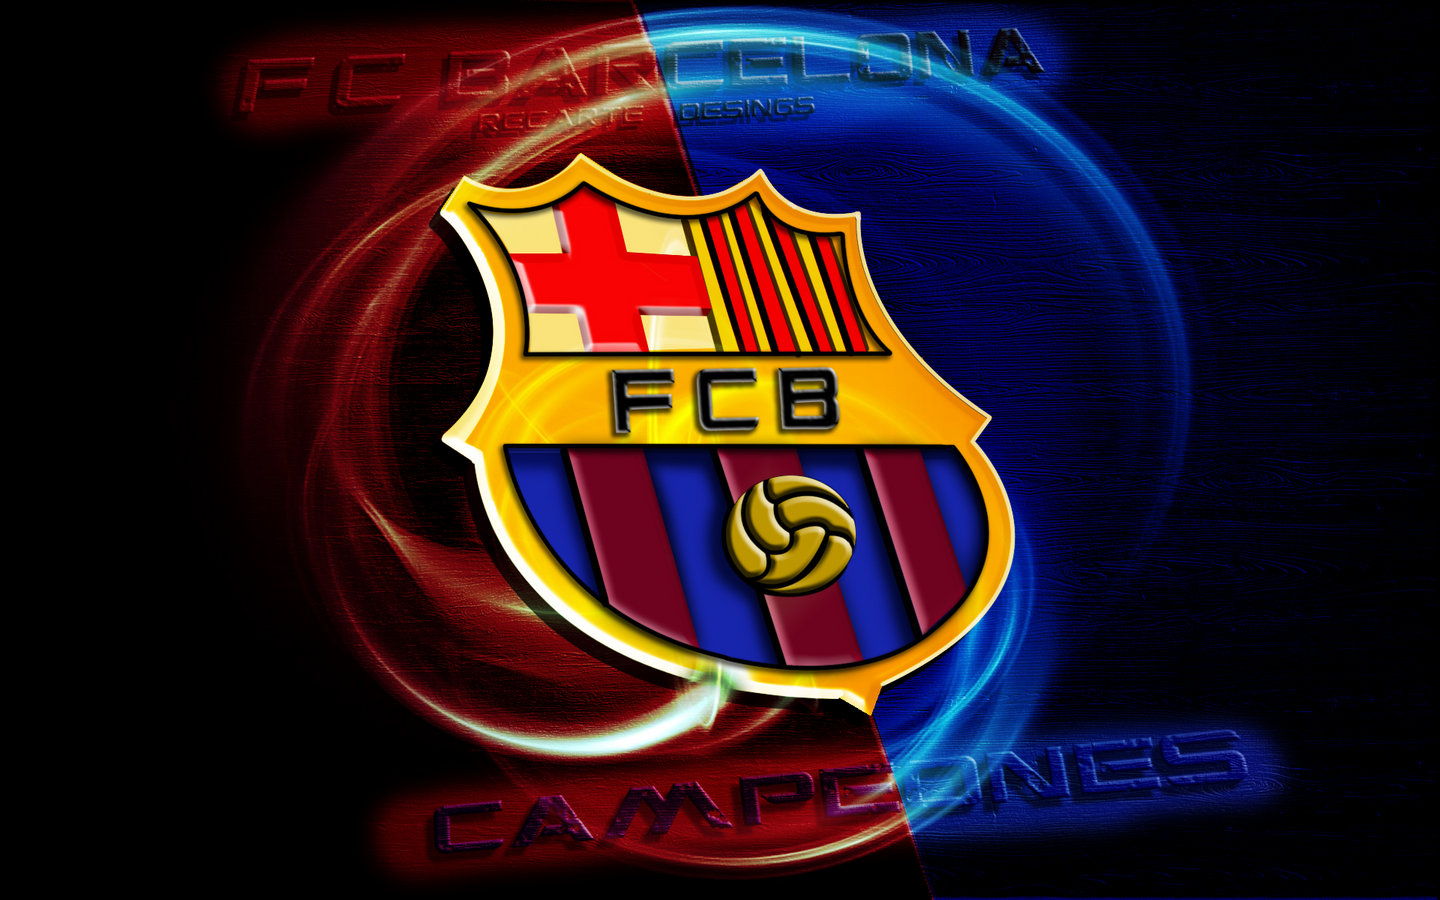 World Sports Hd Wallpapers Fc Barcelona Hd Wallpapers picture wallpaper image